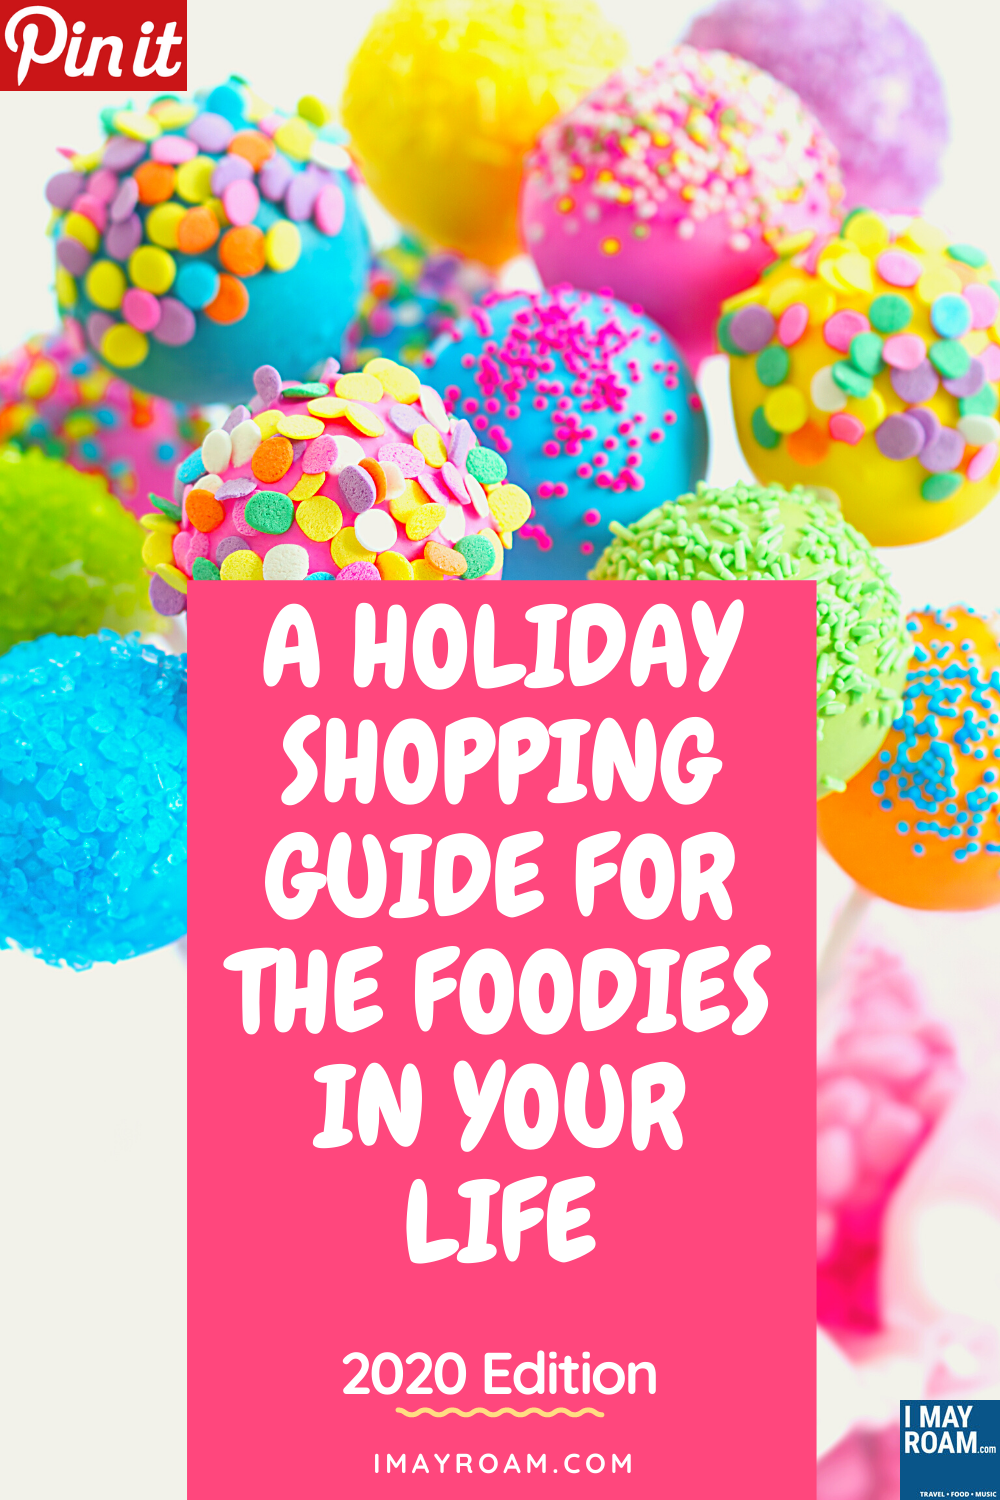 Pinterest A Holiday Shopping Guide for the Foodies in Your Life